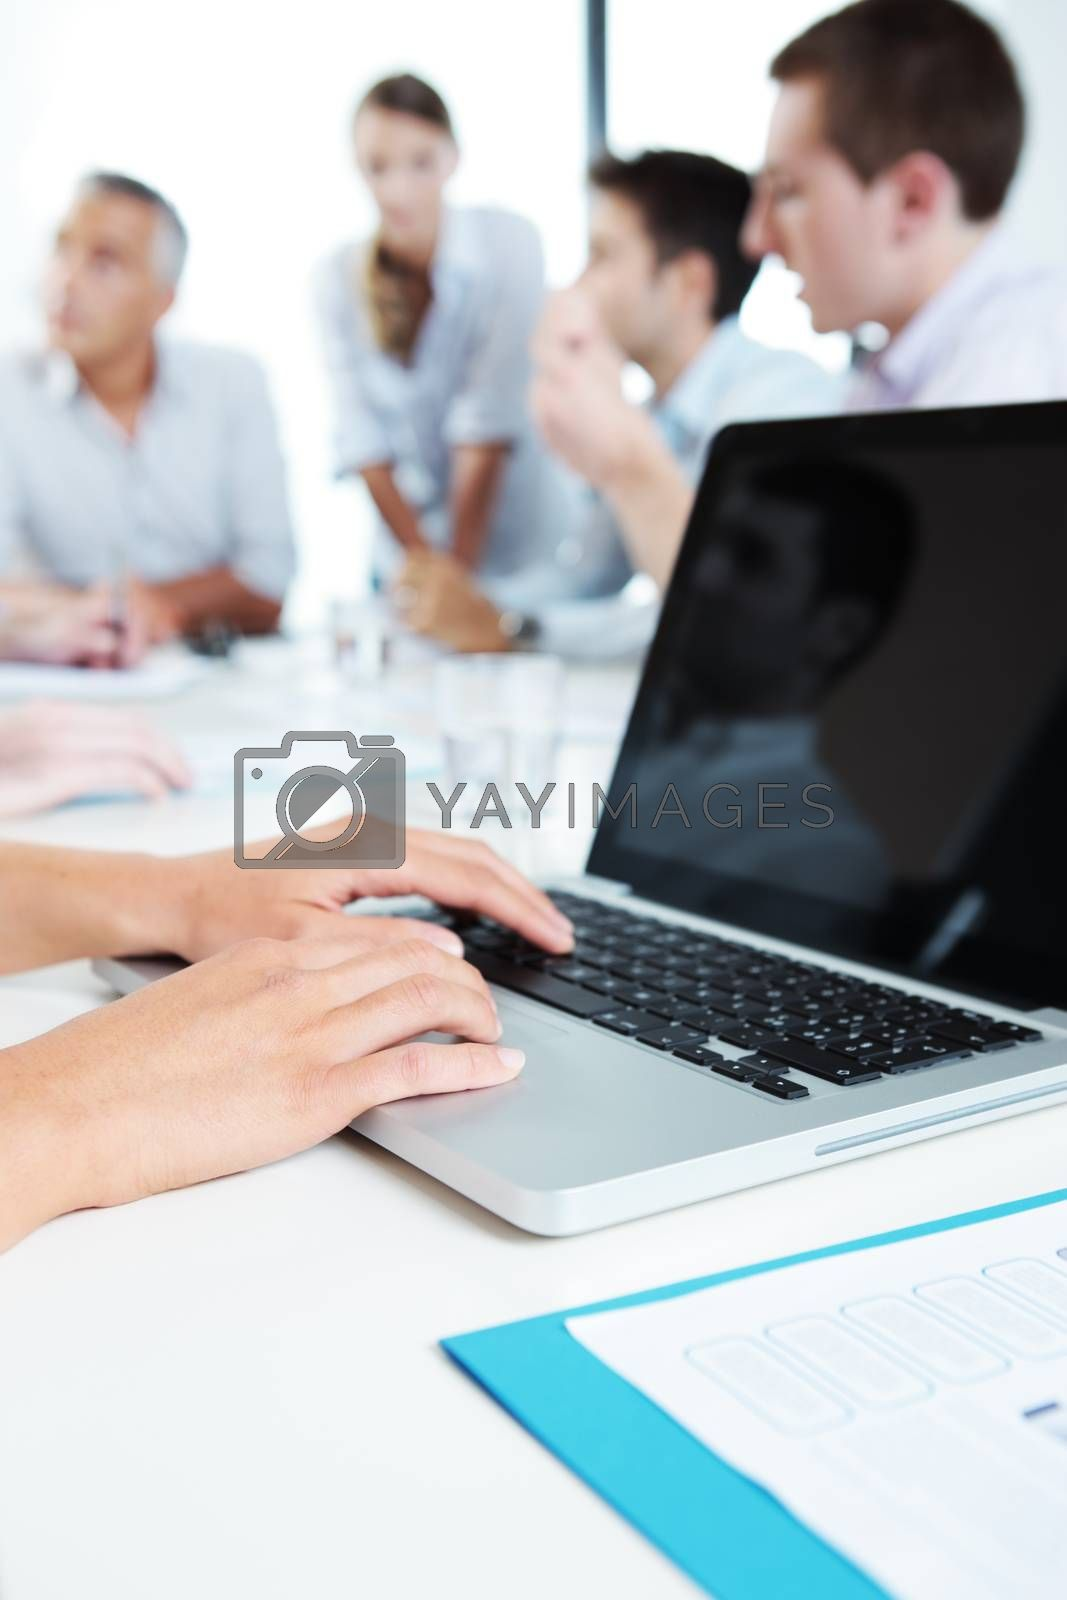 Group of business people working together, hands typing on laptop